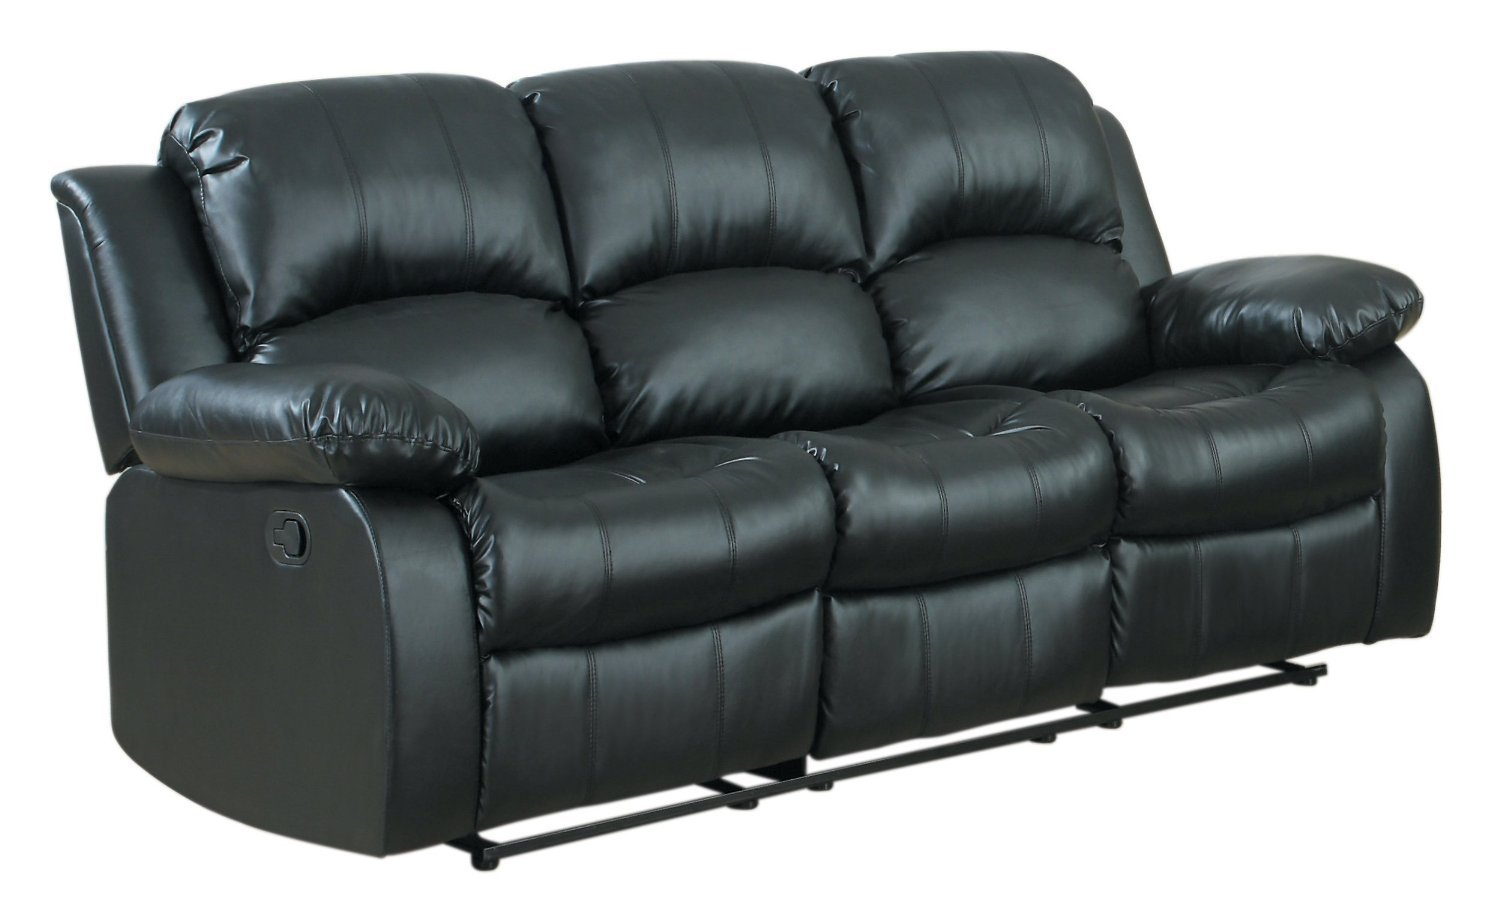 Amazon Com Case Andrea Milanotm Bonded Leather Double Recliner Sofa